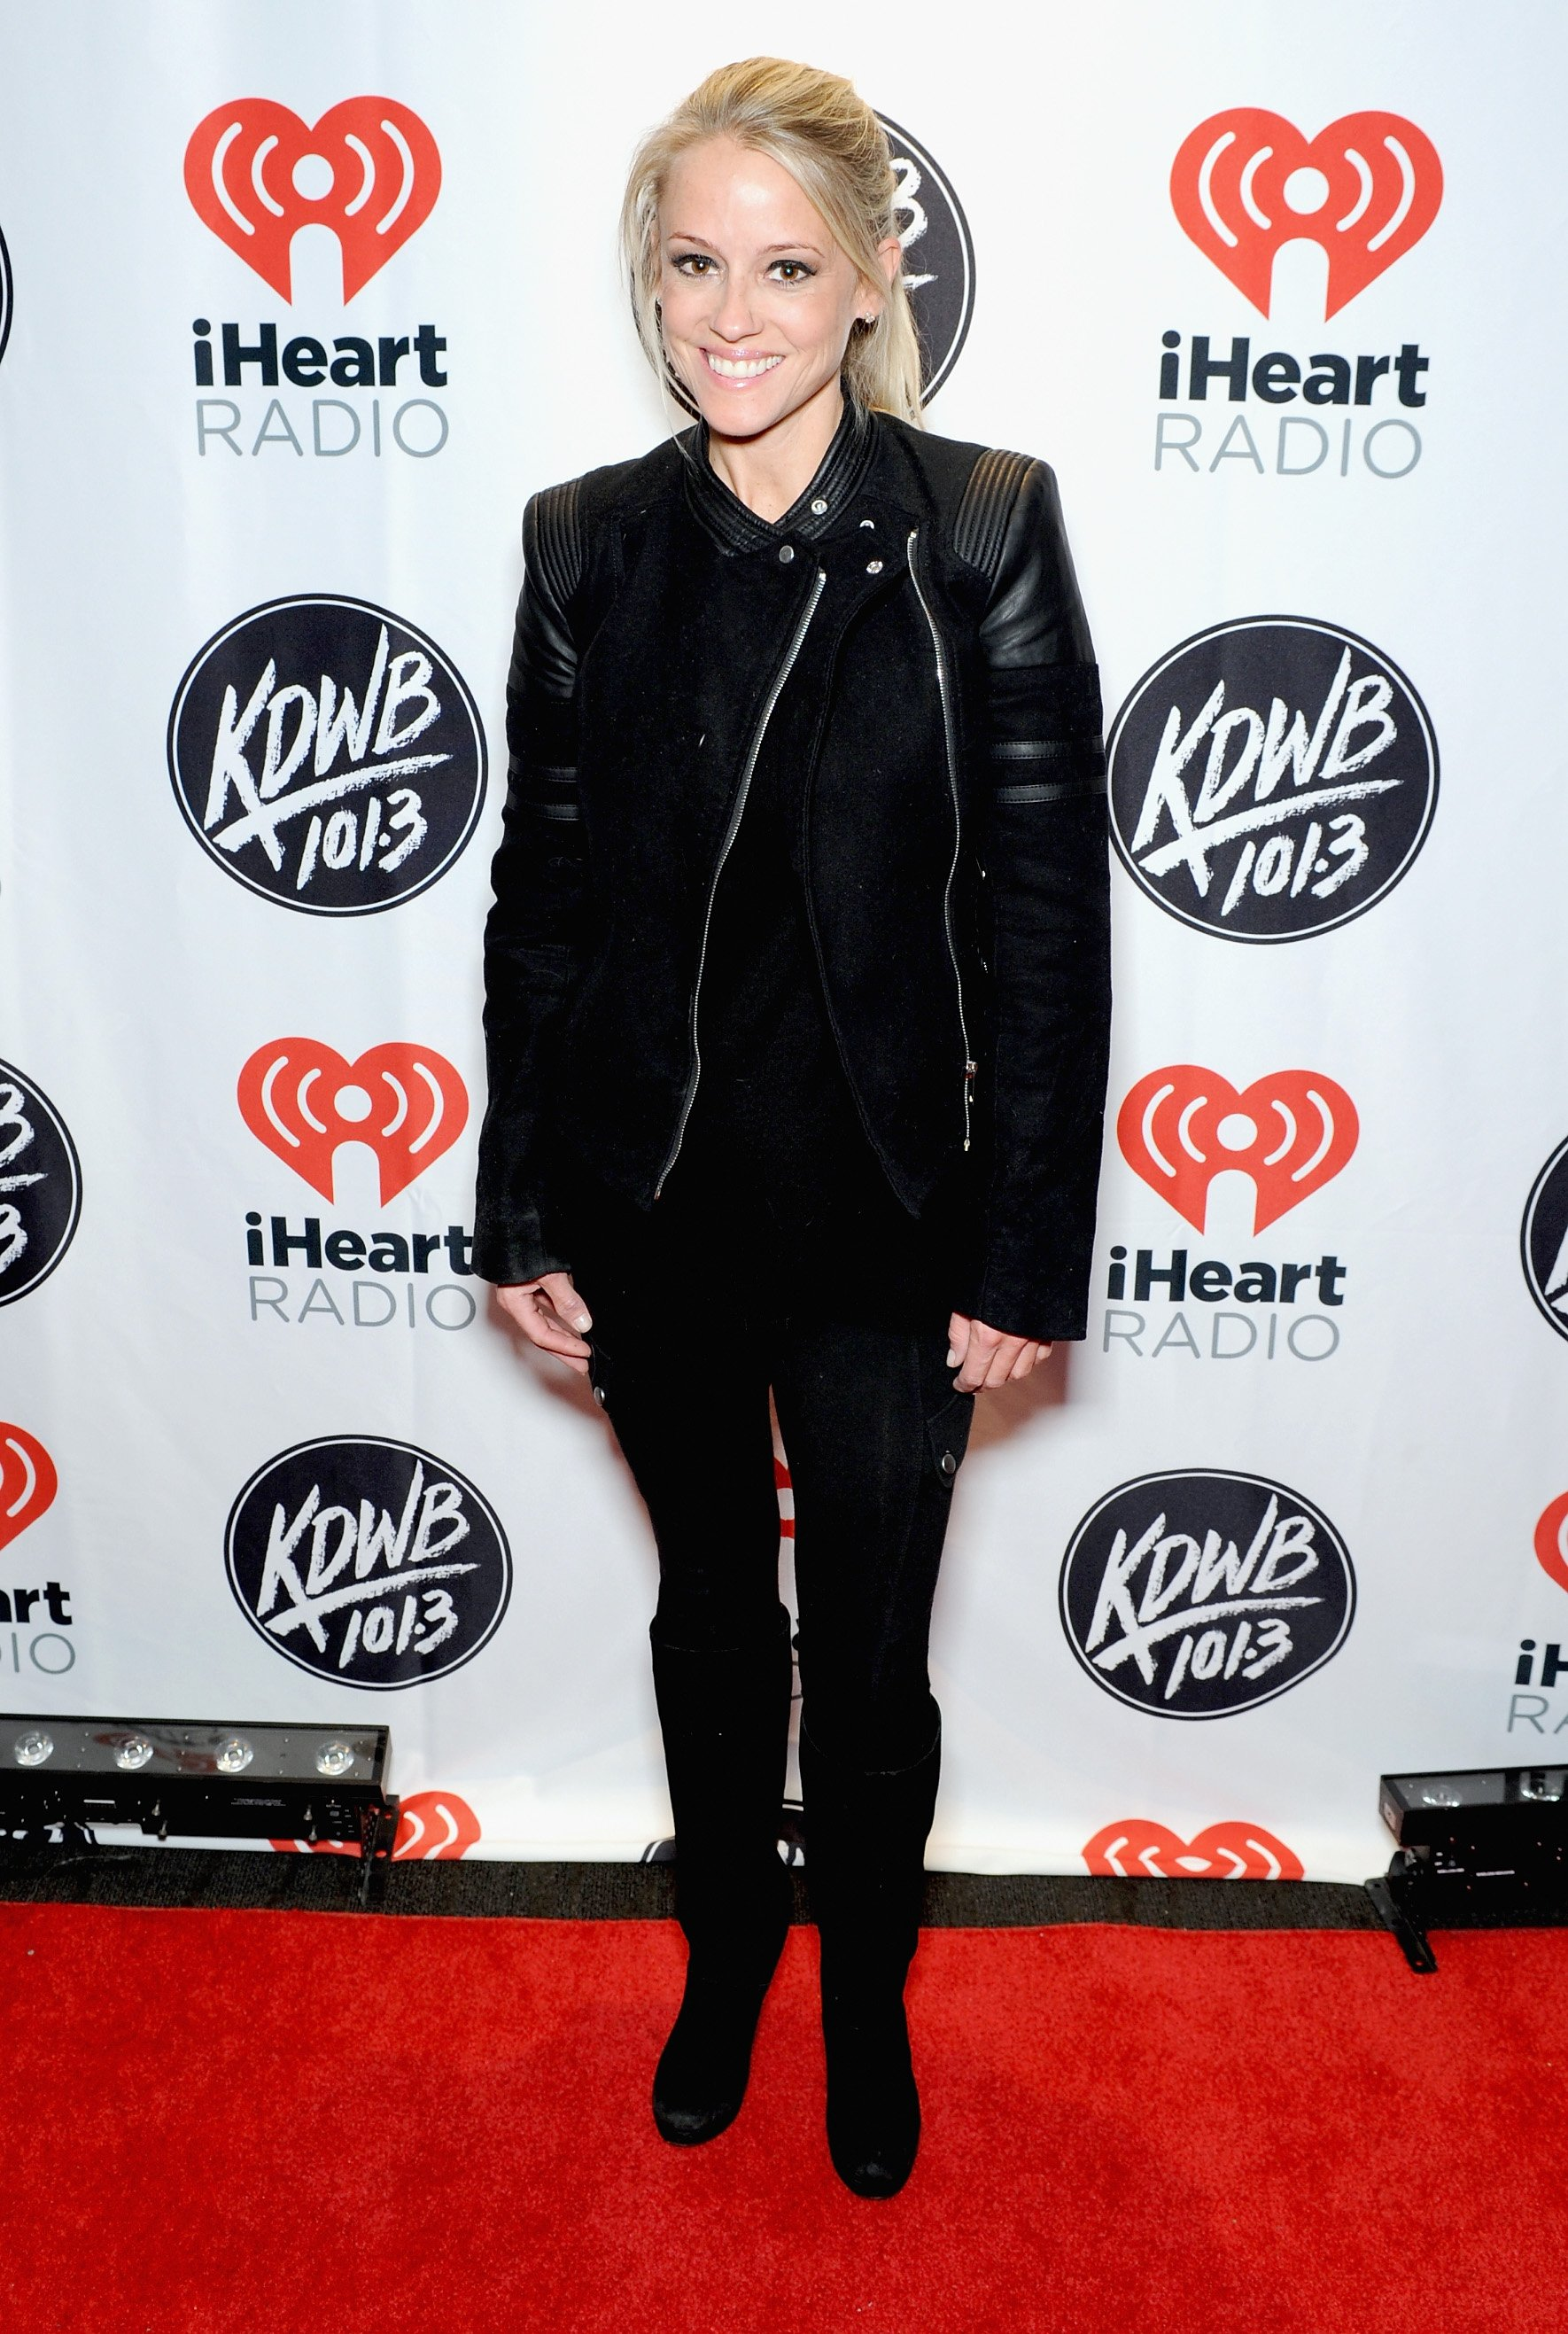 Nicole Curtis attends 101.3 KDWB's Jingle Ball 2014 at Xcel Energy Center on December 8, 2014 in St Paul, Minnesota | Photo: GettyImages